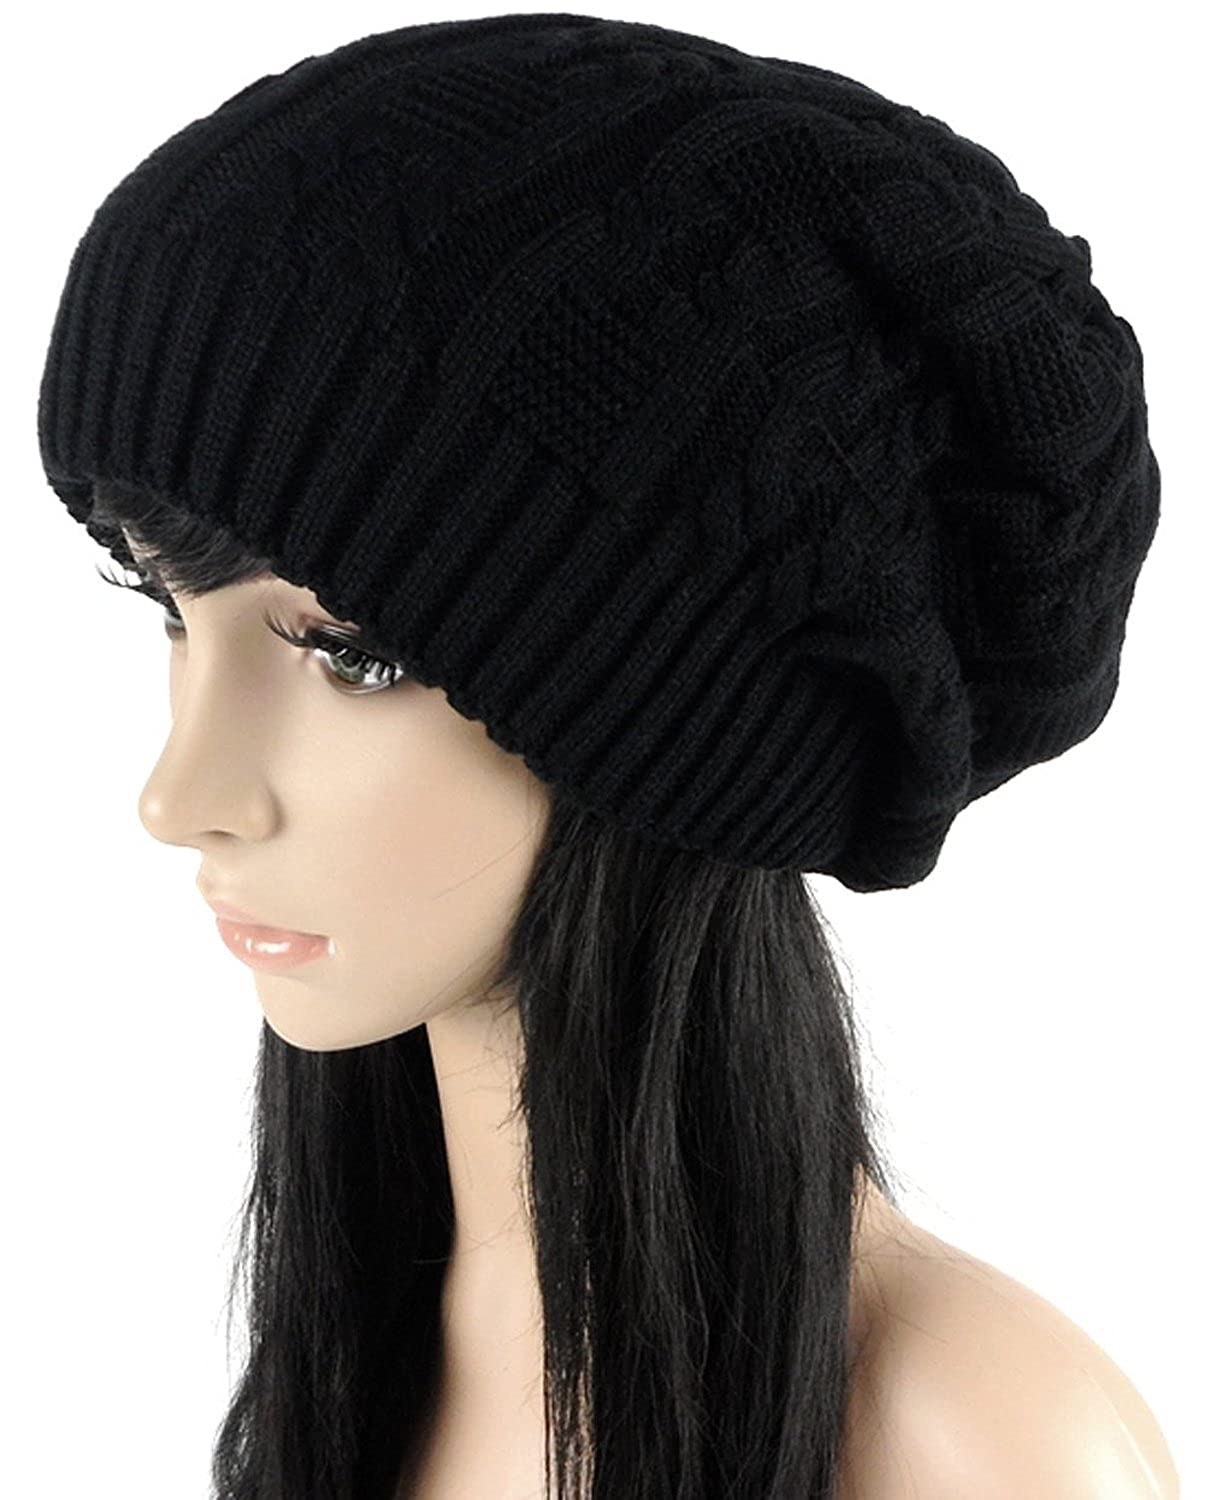 f90a6546822e47 Amazon.com: Ls Lady Thick Slouchy Knit Oversized Beanie Cap Hat Winter  Warmming Cap Black: Clothing